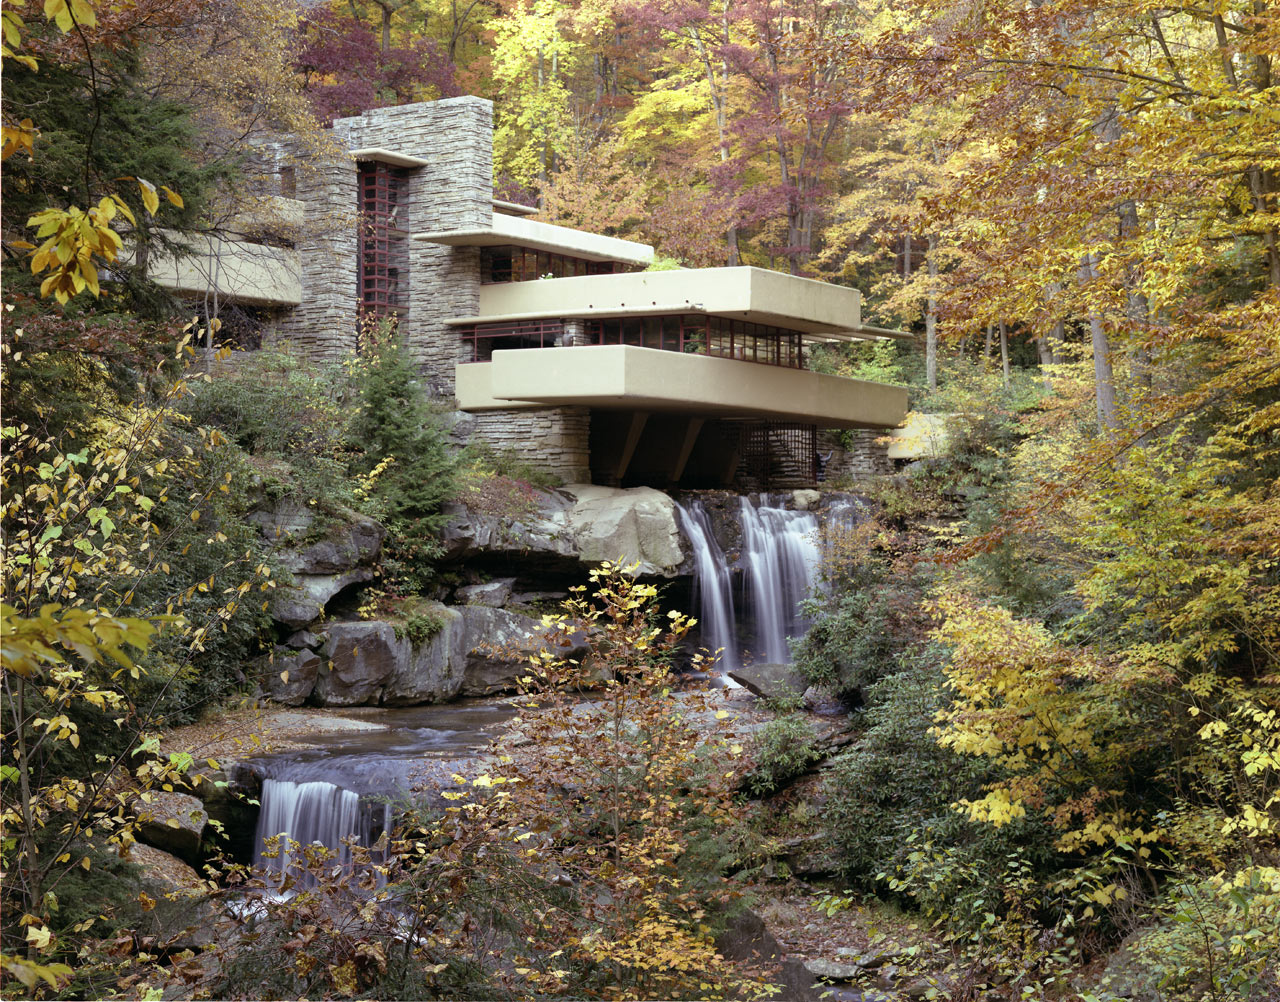 Frank Lloyd Wright Design Philosophy how today's designers are influencedfrank lloyd wright's